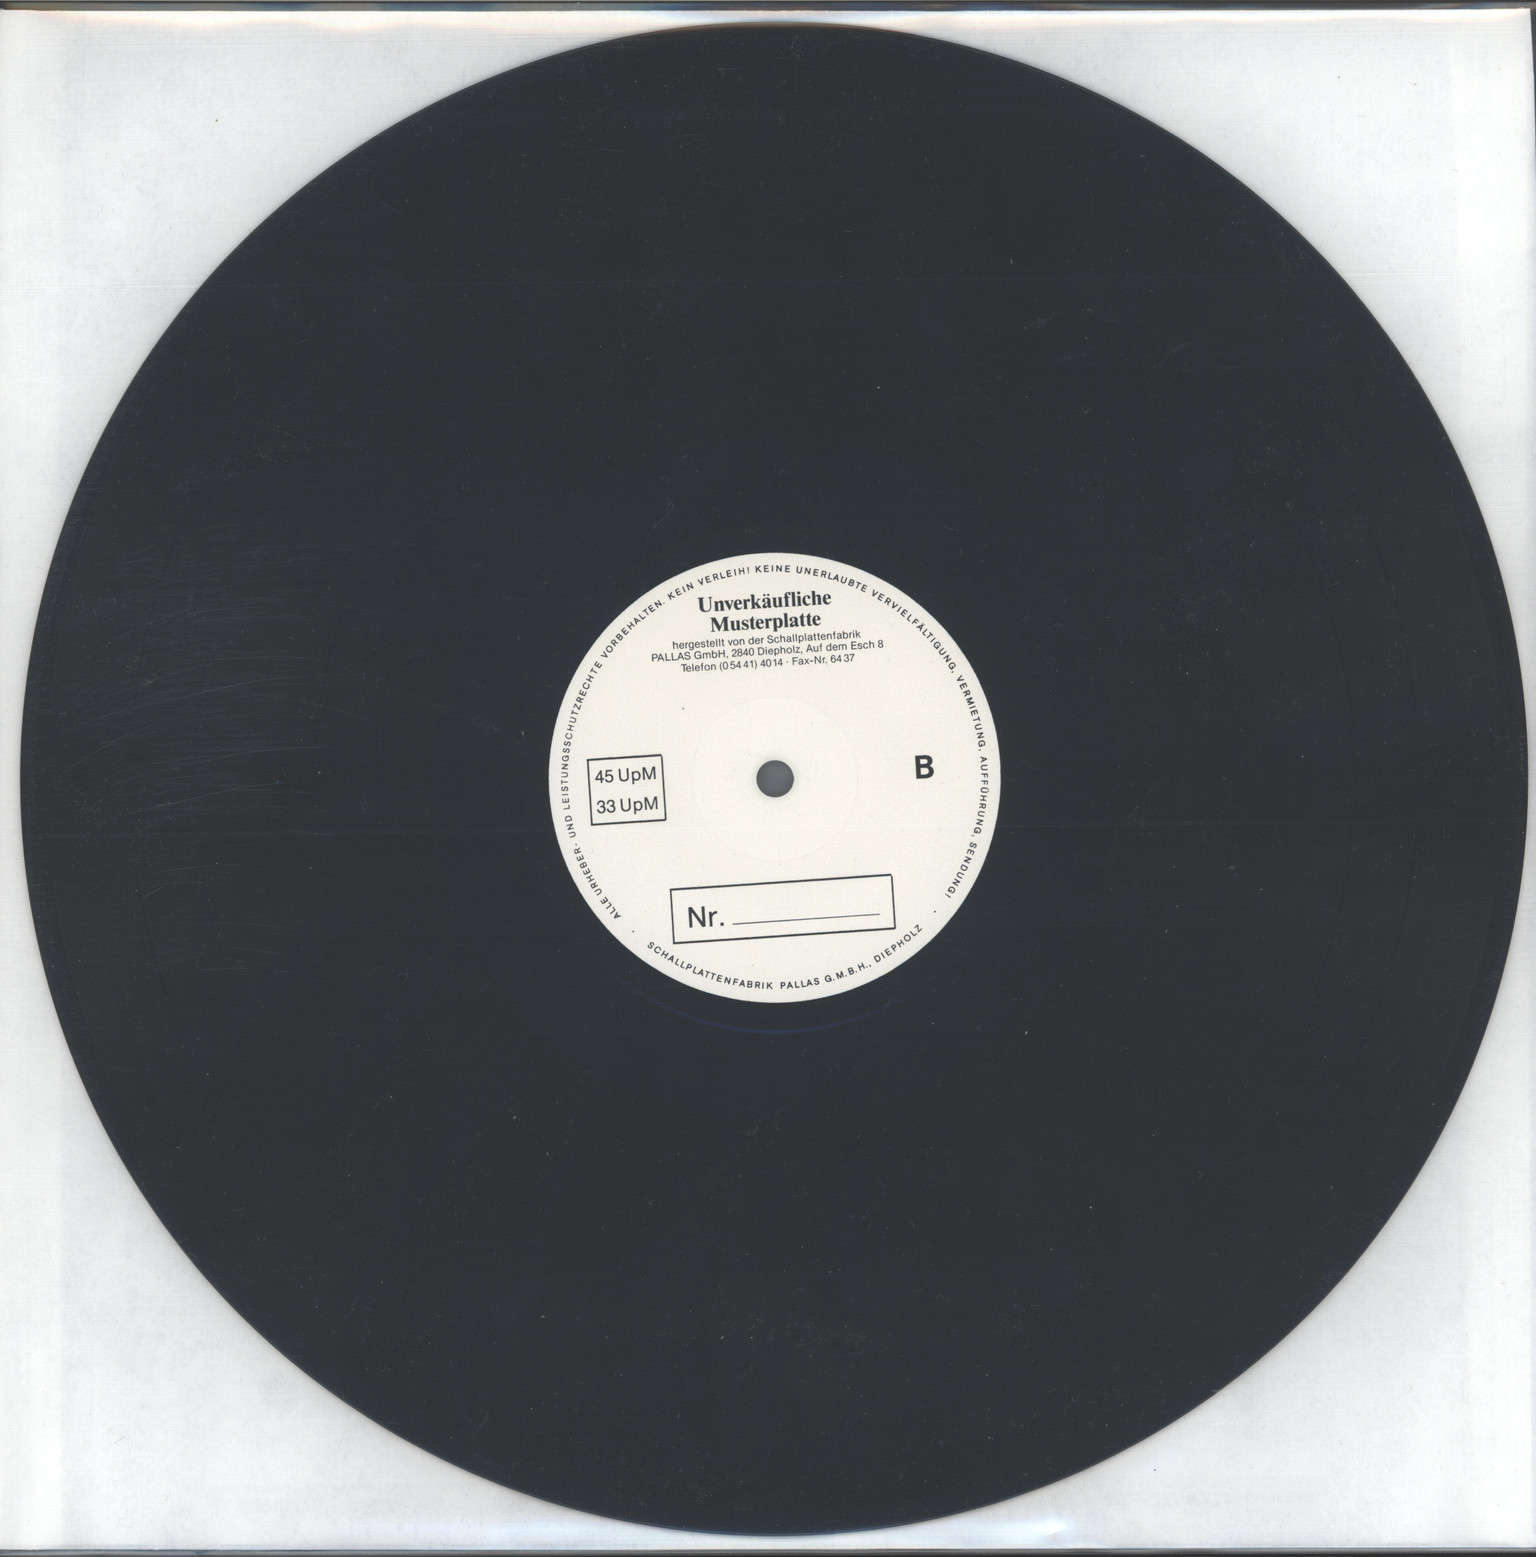 Sprinkler: More Boy, Less Friend, LP (Vinyl)